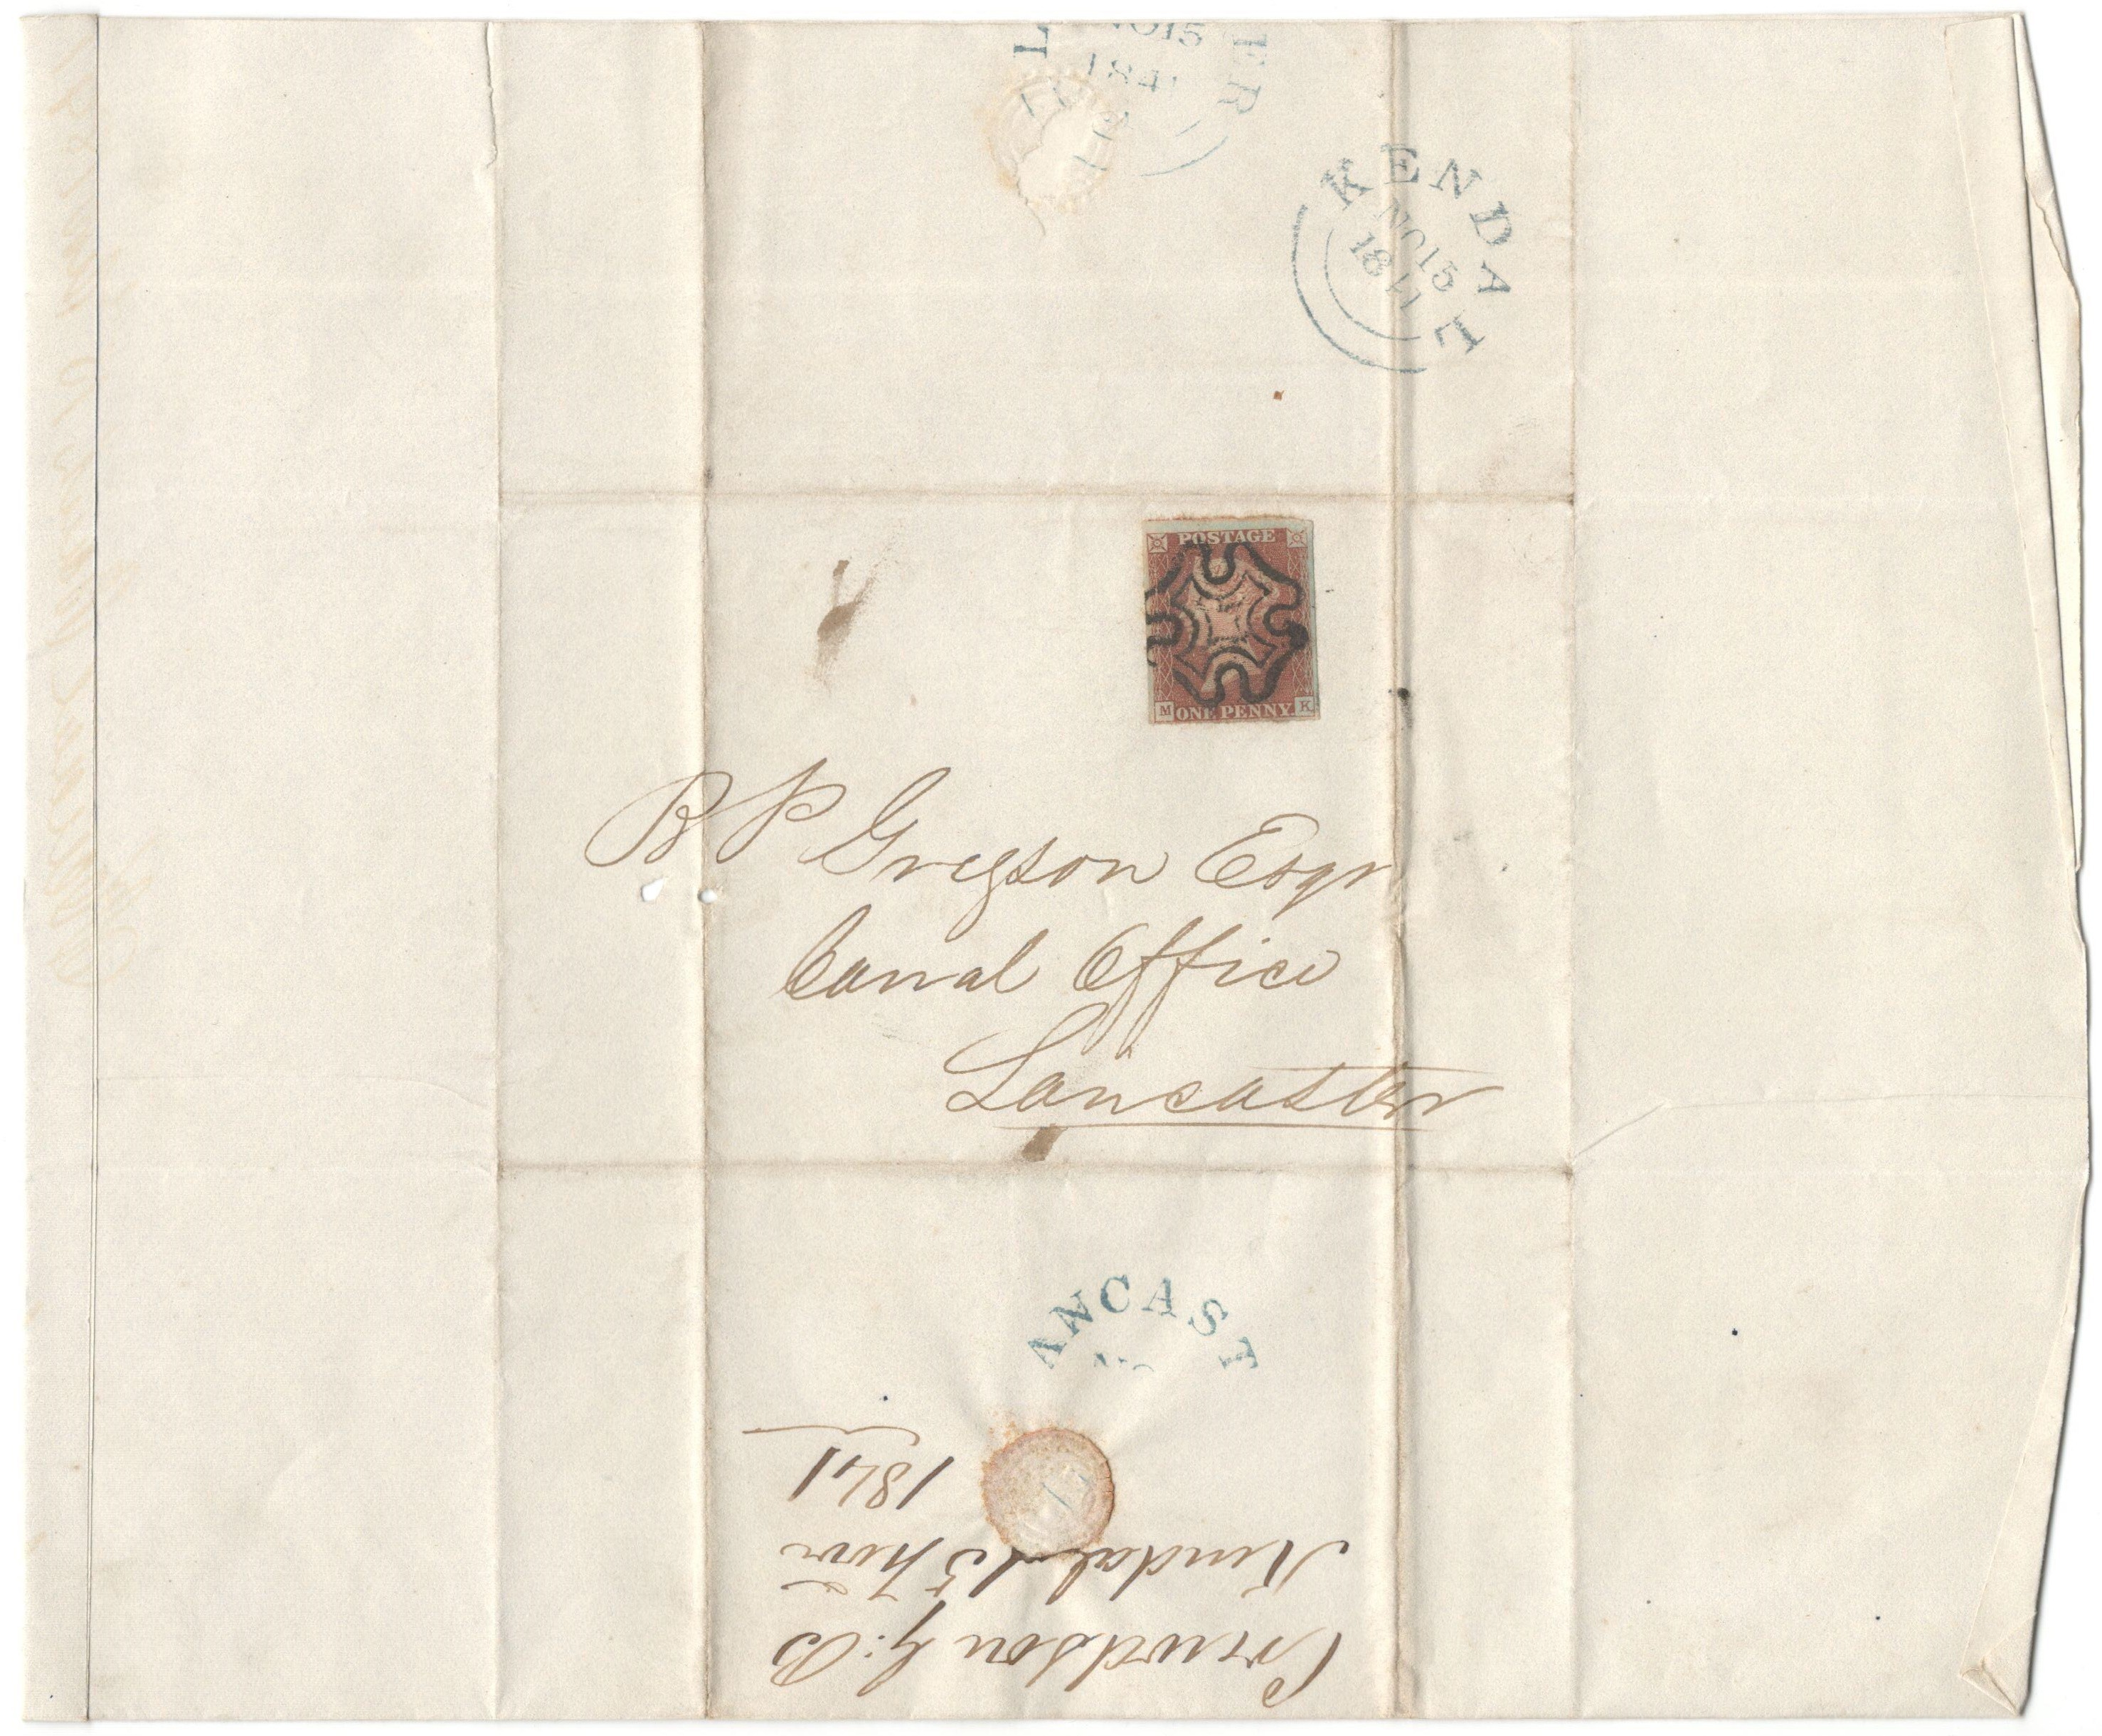 1841 IMPERFORATE PENNY RED STAMP ON ENTIRE LANCASTER / KENDAL WITH MALTESE CROSS (MK) - Image 2 of 3